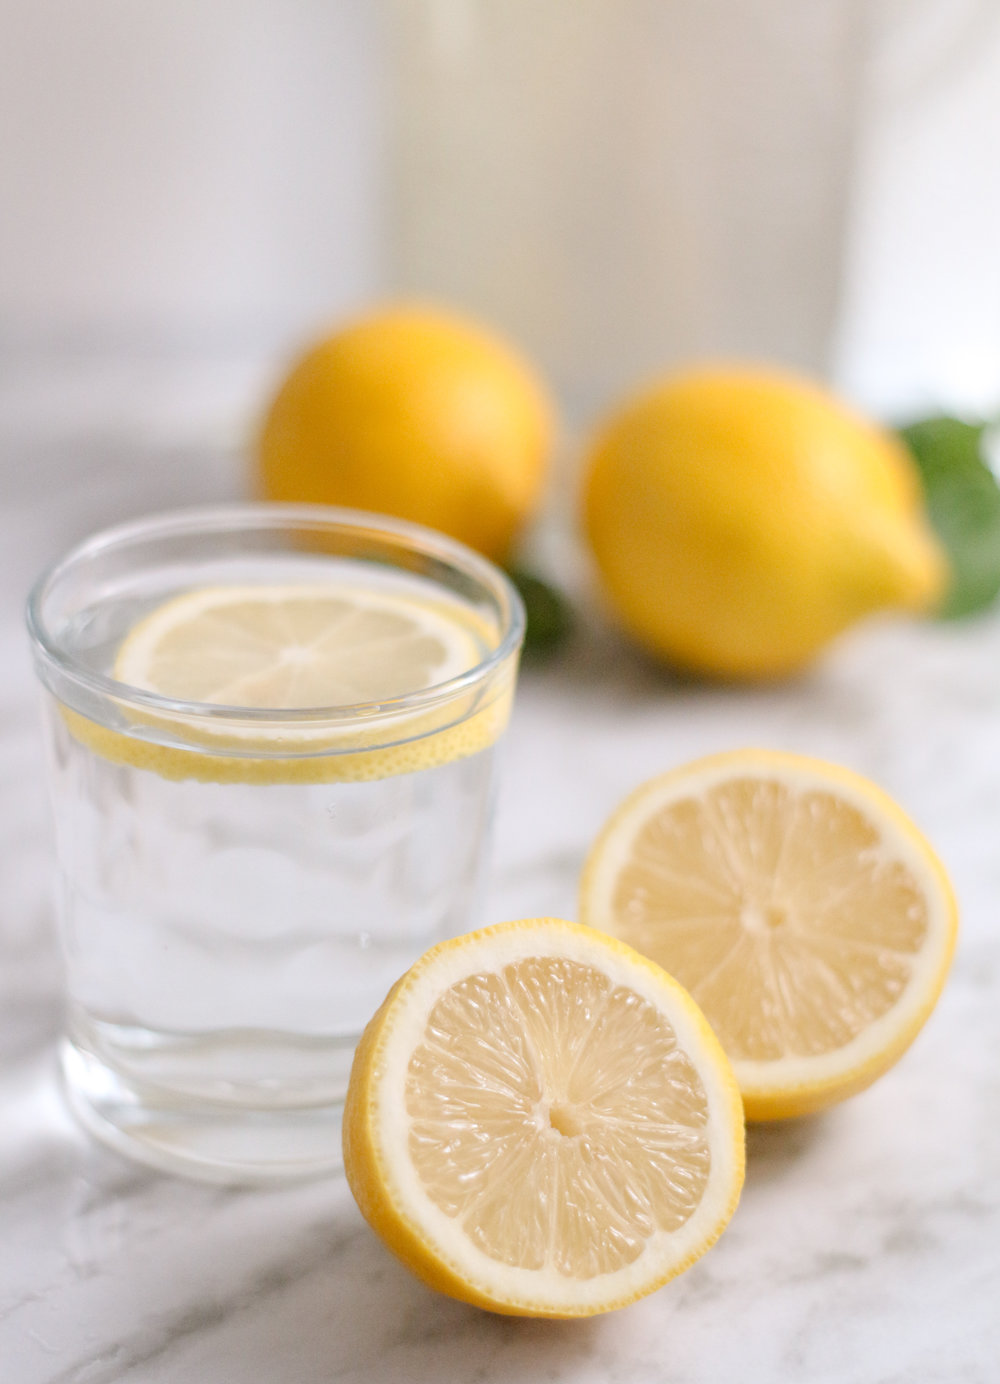 lemonwaterinthemorningfirstthing